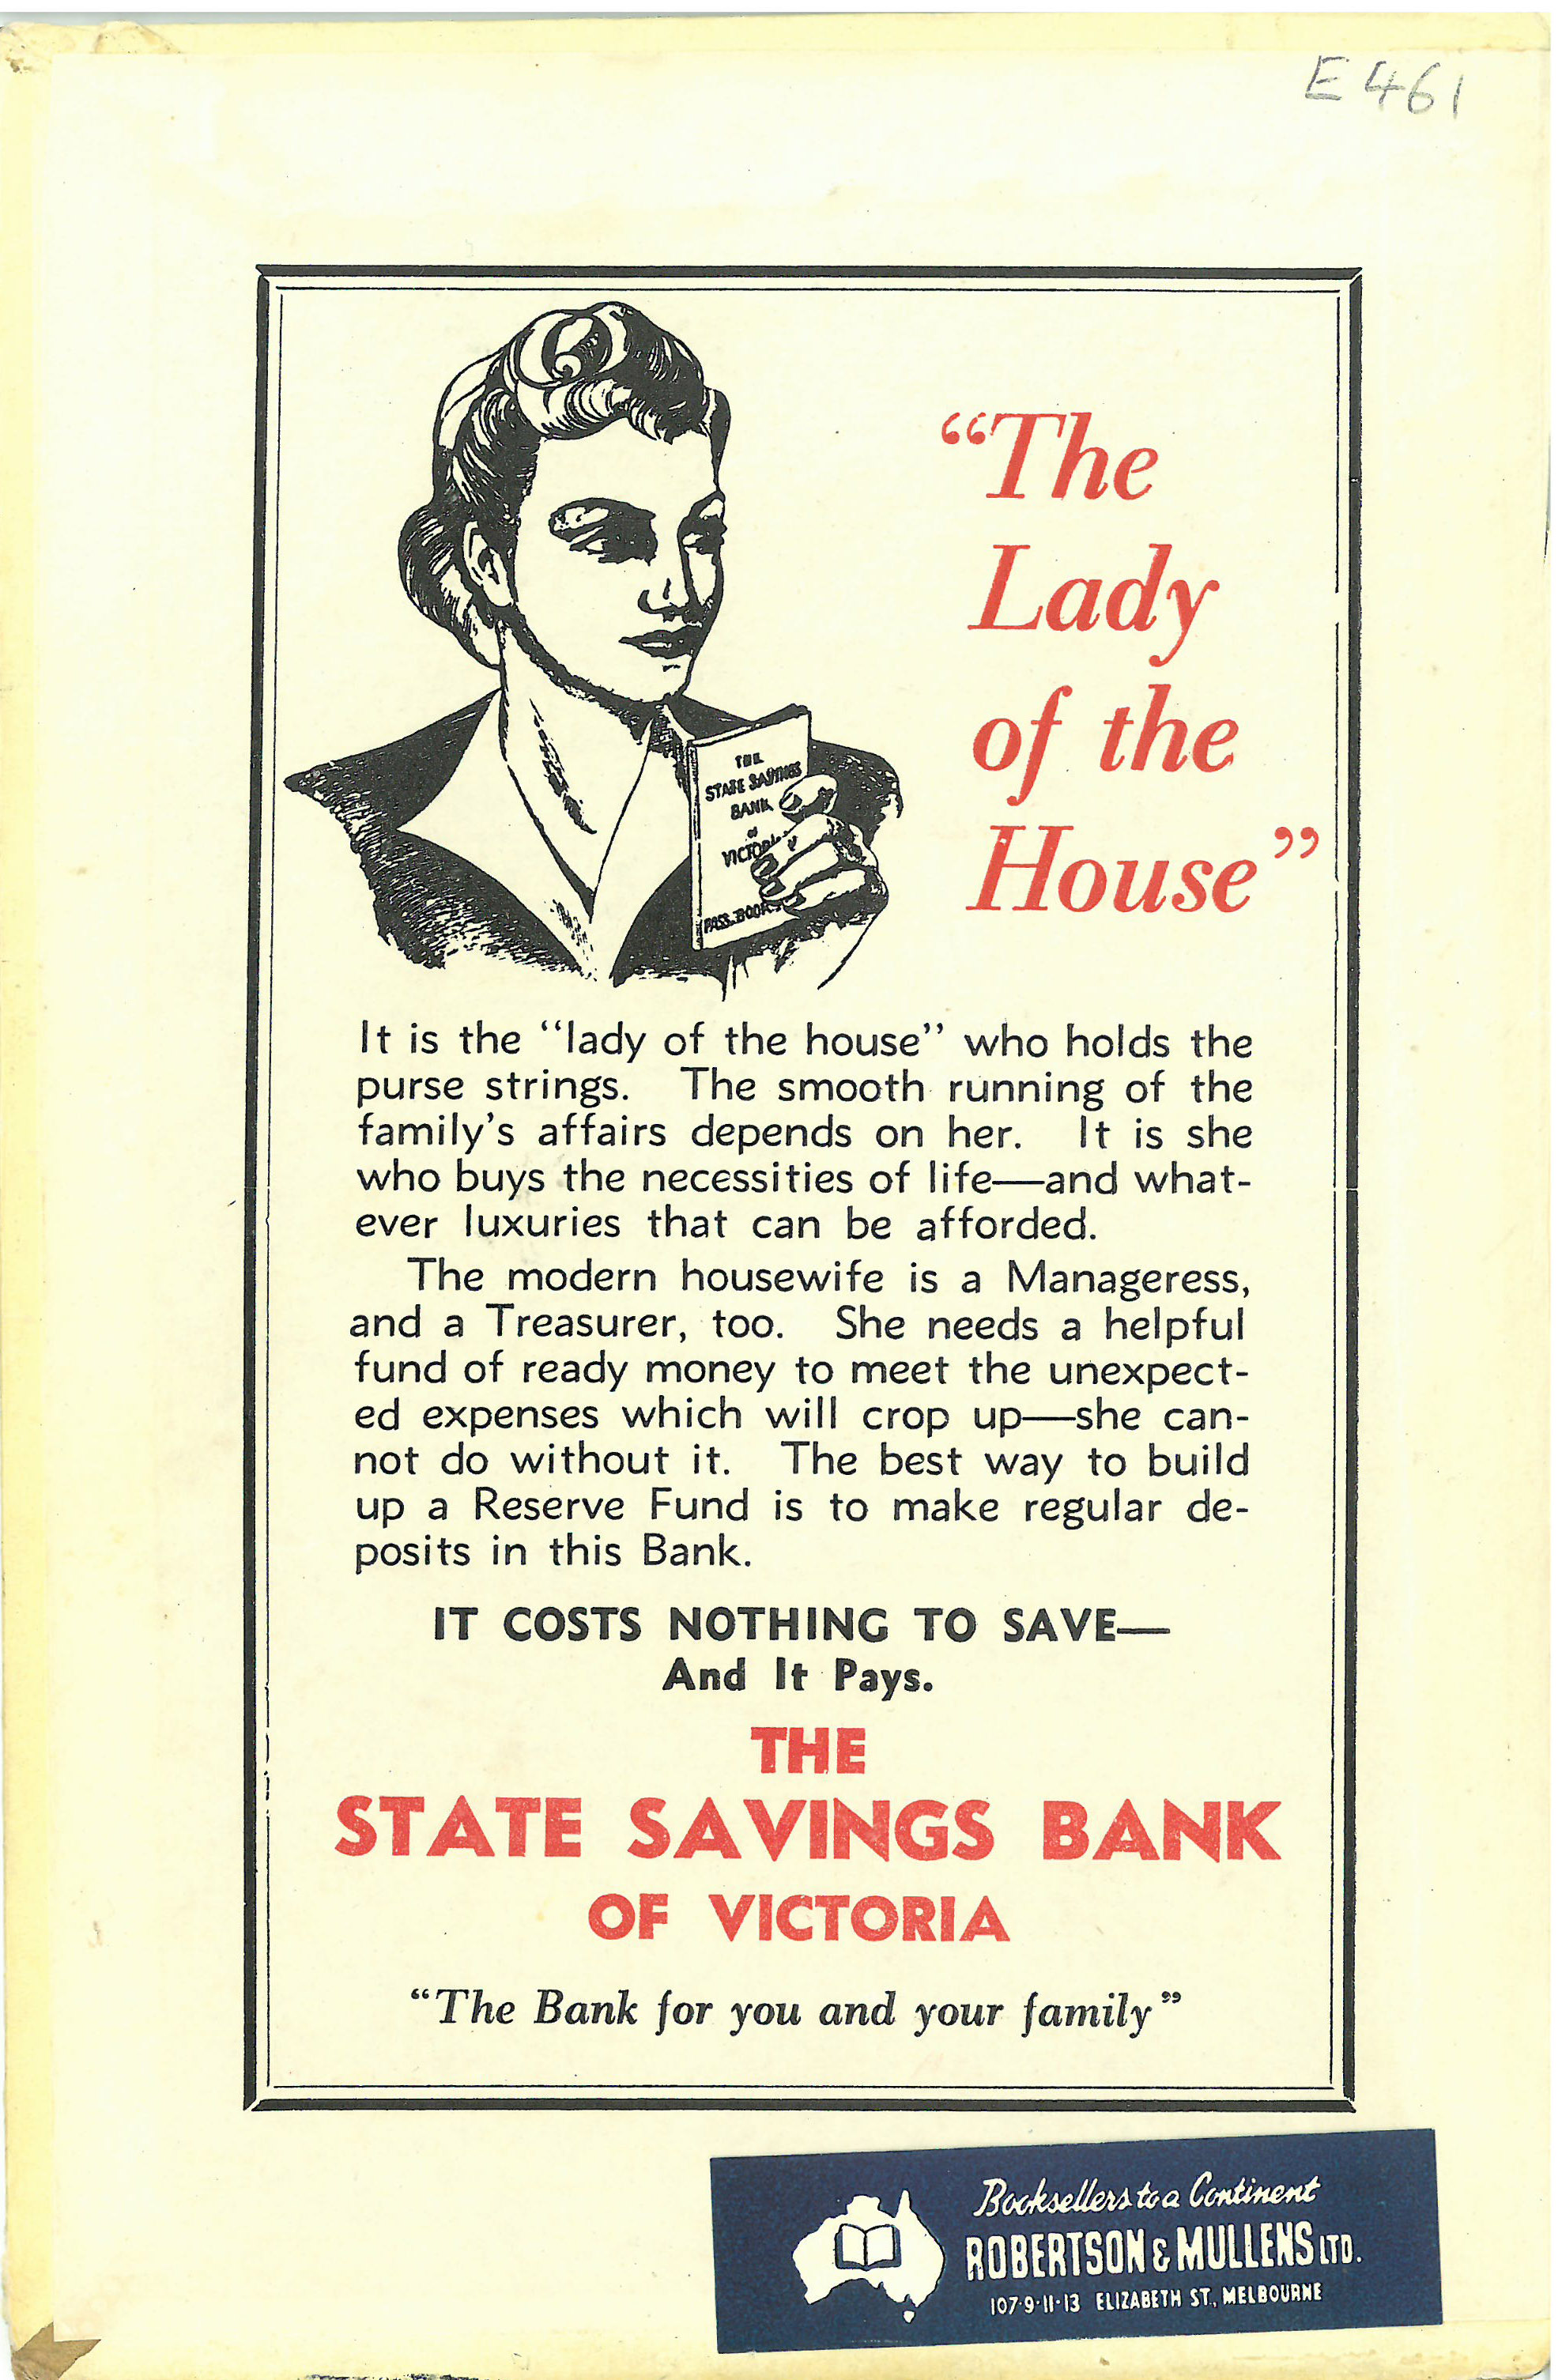 The back inside cover of the same book - including the State Savings Bank of Victoria' brand